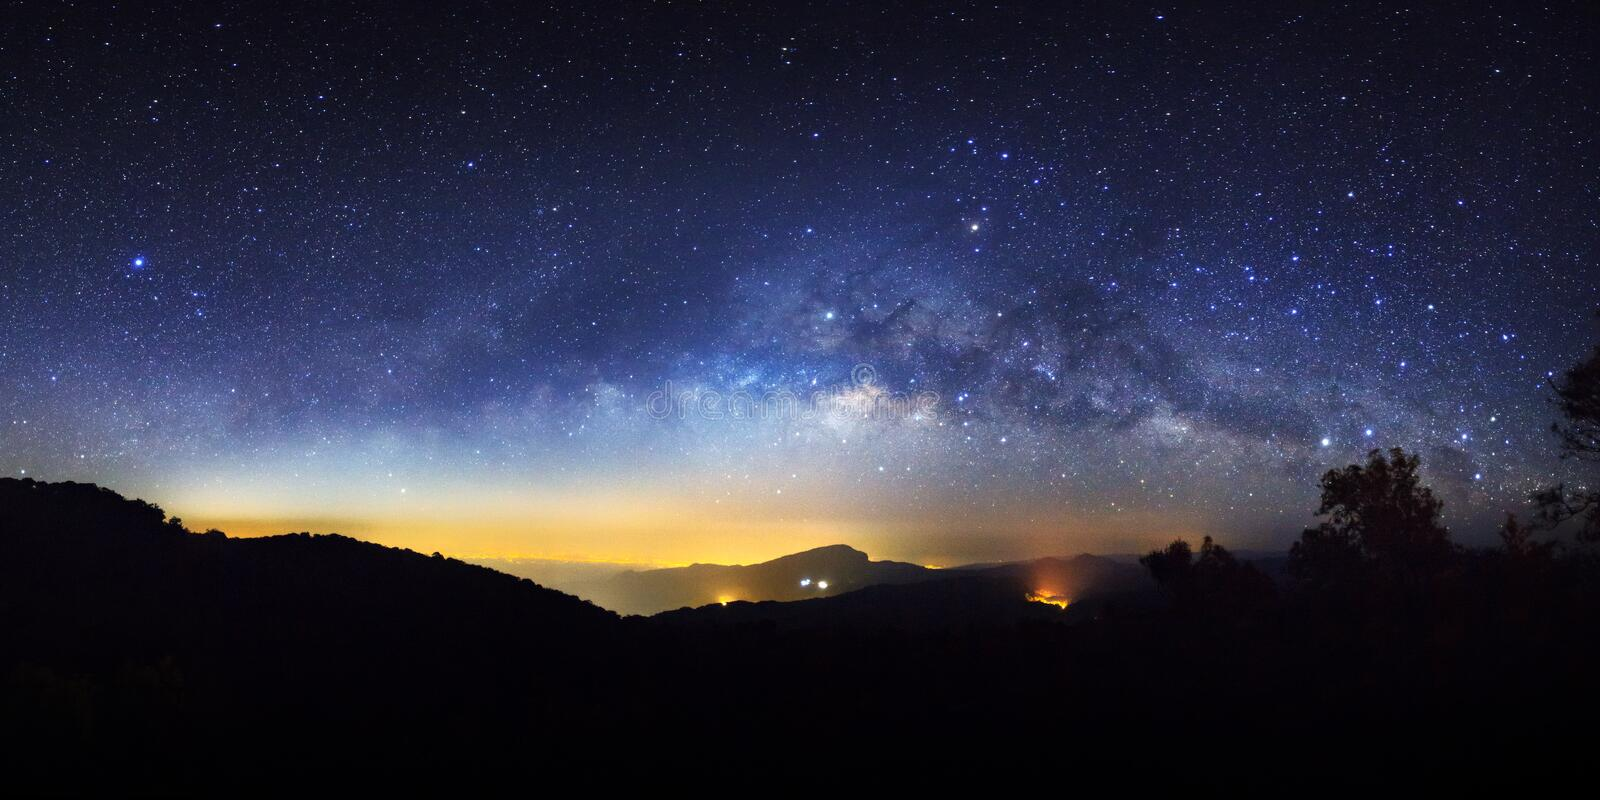 Panorama starry night sky and milky way galaxy with stars and sp. Ace dust in the universe at Doi inthanon Chiang mai, Thailand stock image